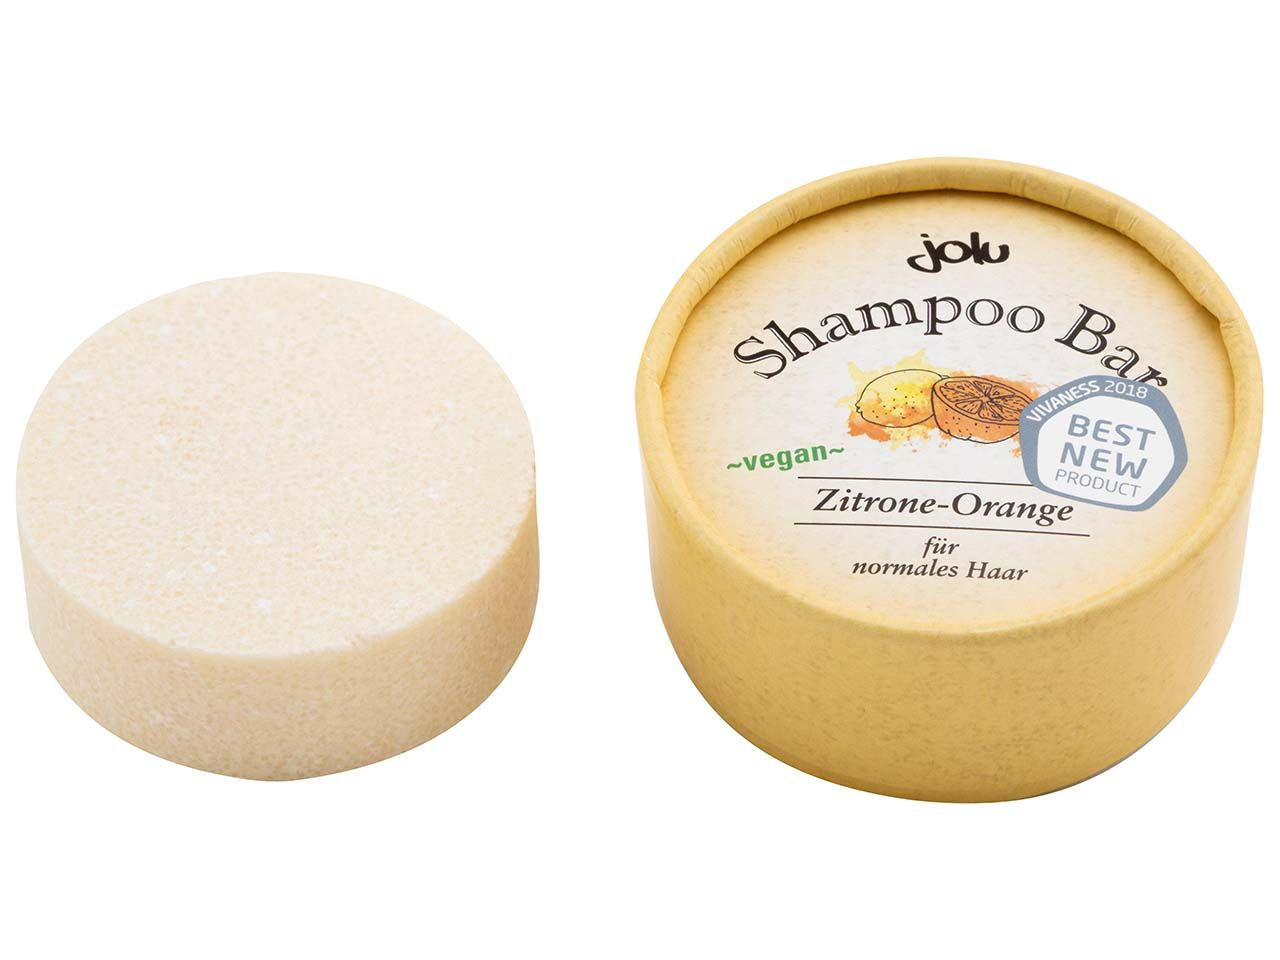 "Jolu Festes Shampoo ""Shampoo Bar Zitrone-Orange"" in Pappdose, 50 g 314"